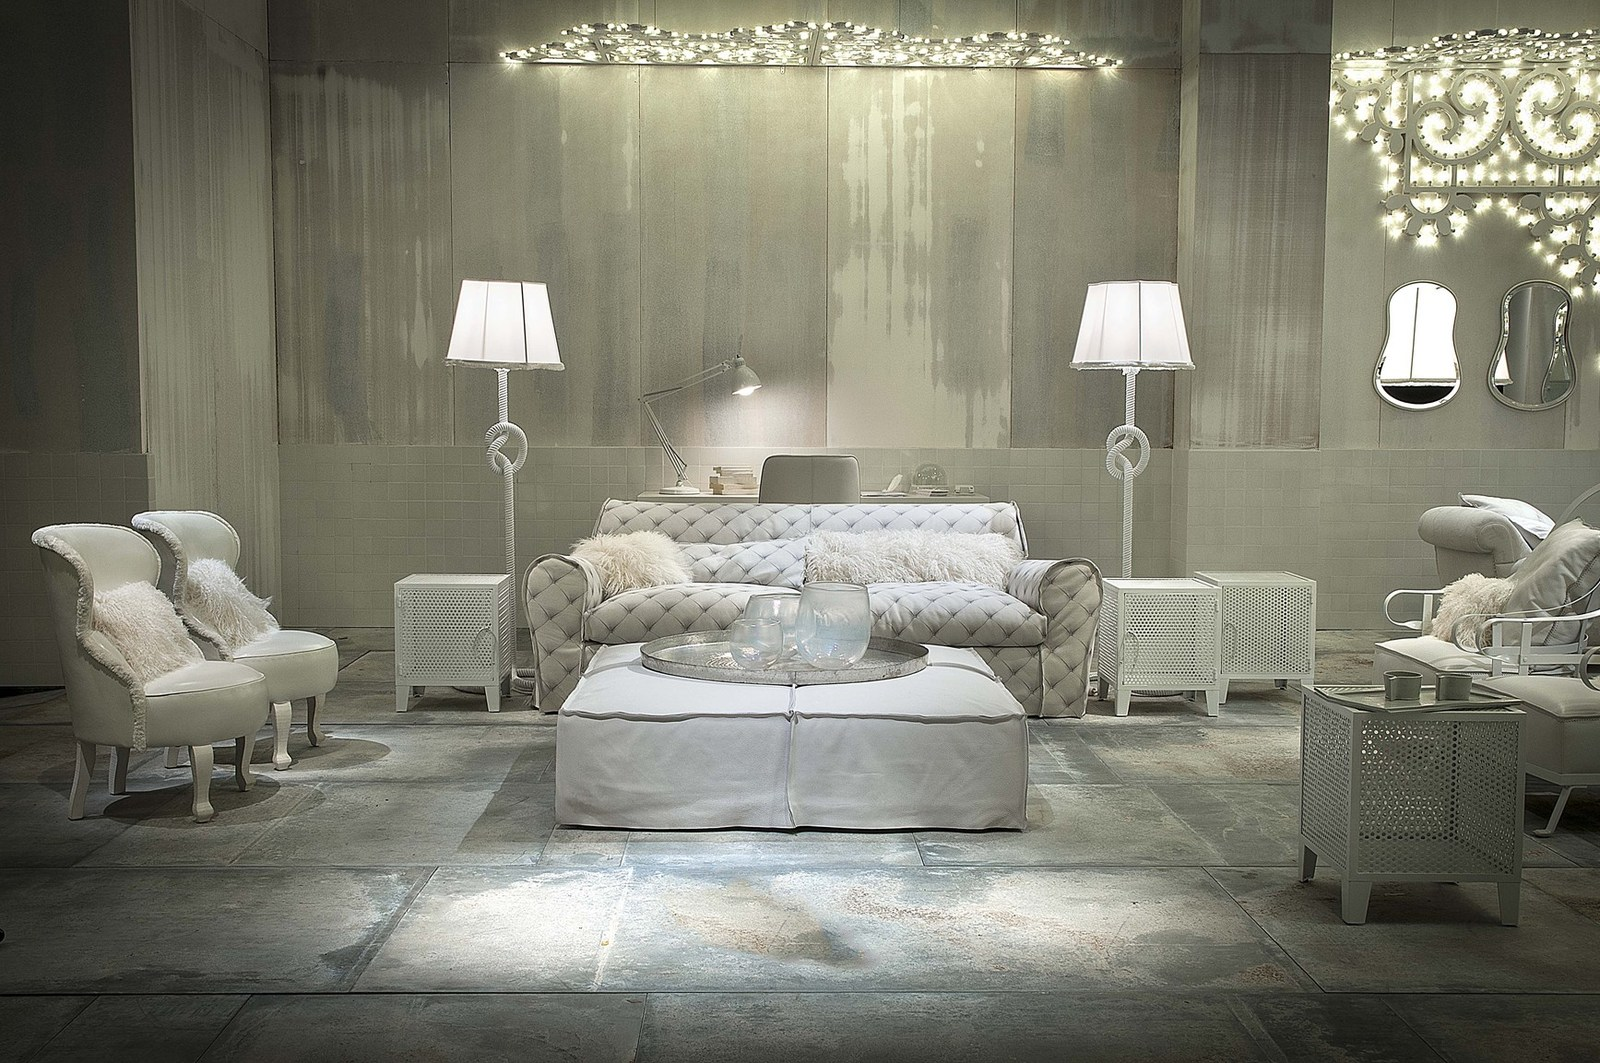 Paola navone designs white fairy tale like interiors to for Baxter arredamenti